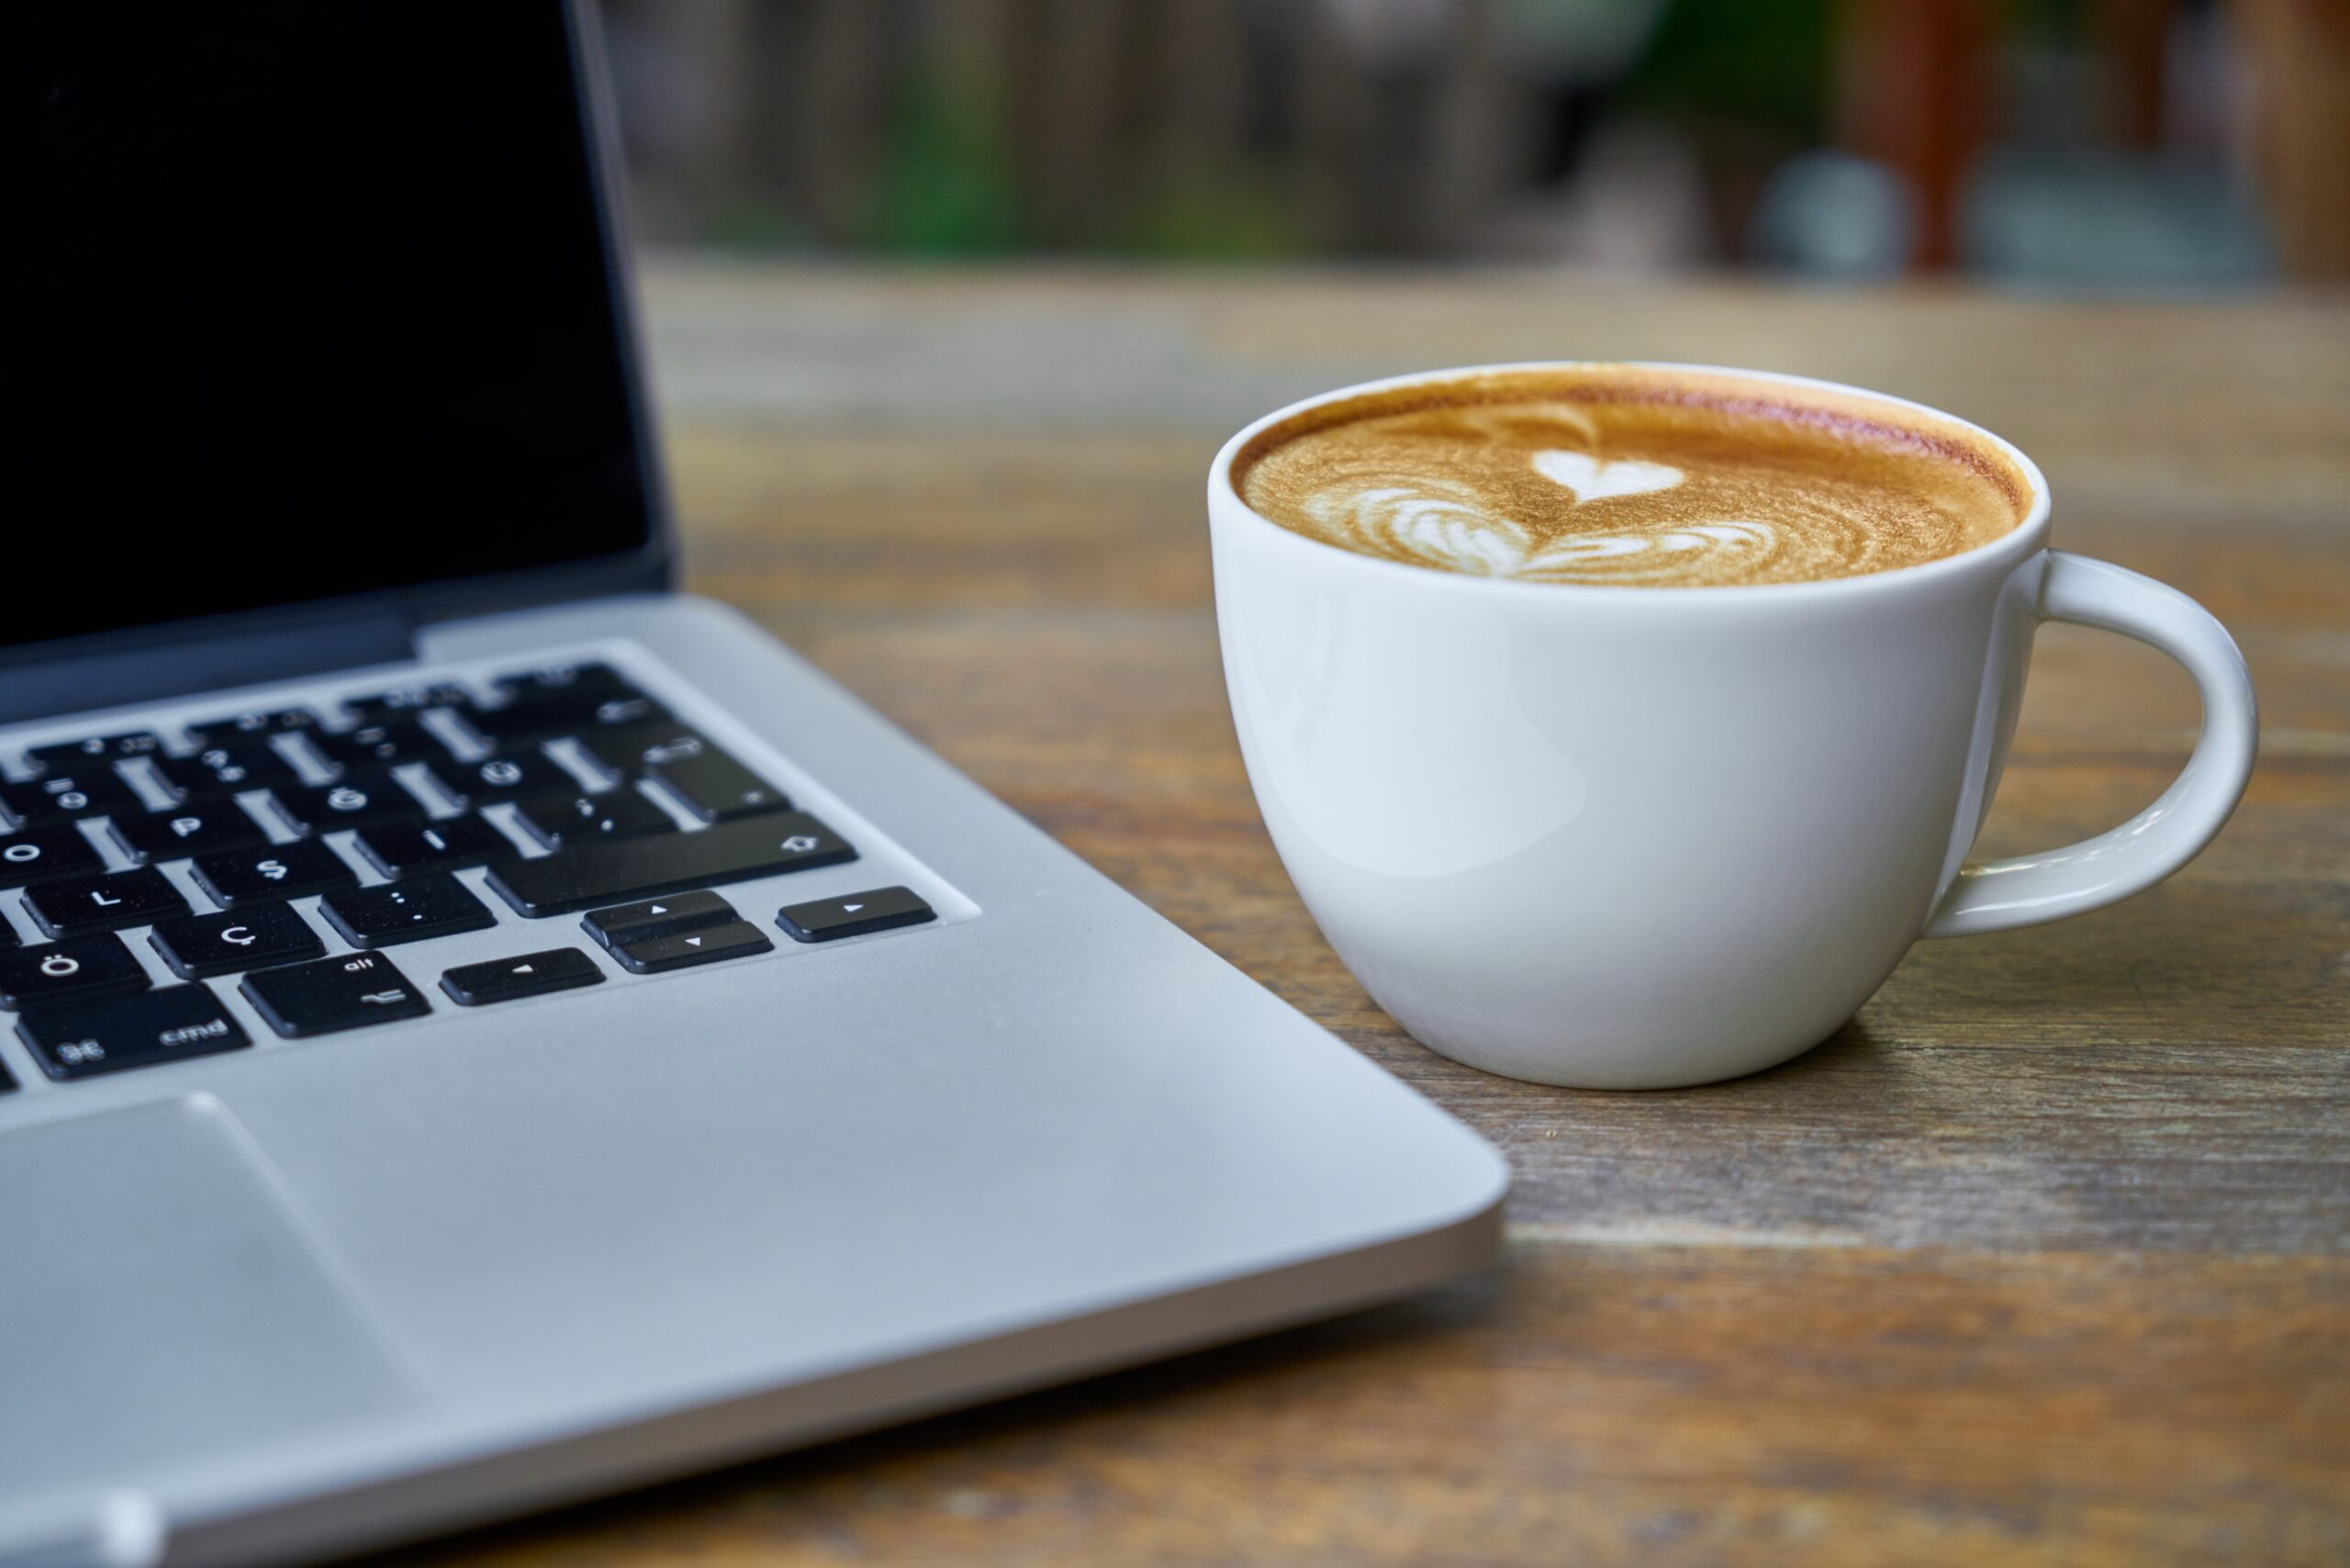 Morning Coffee Series: Can I File an IRS Offer-in-Compromise for Business Tax? - Business Tax ...